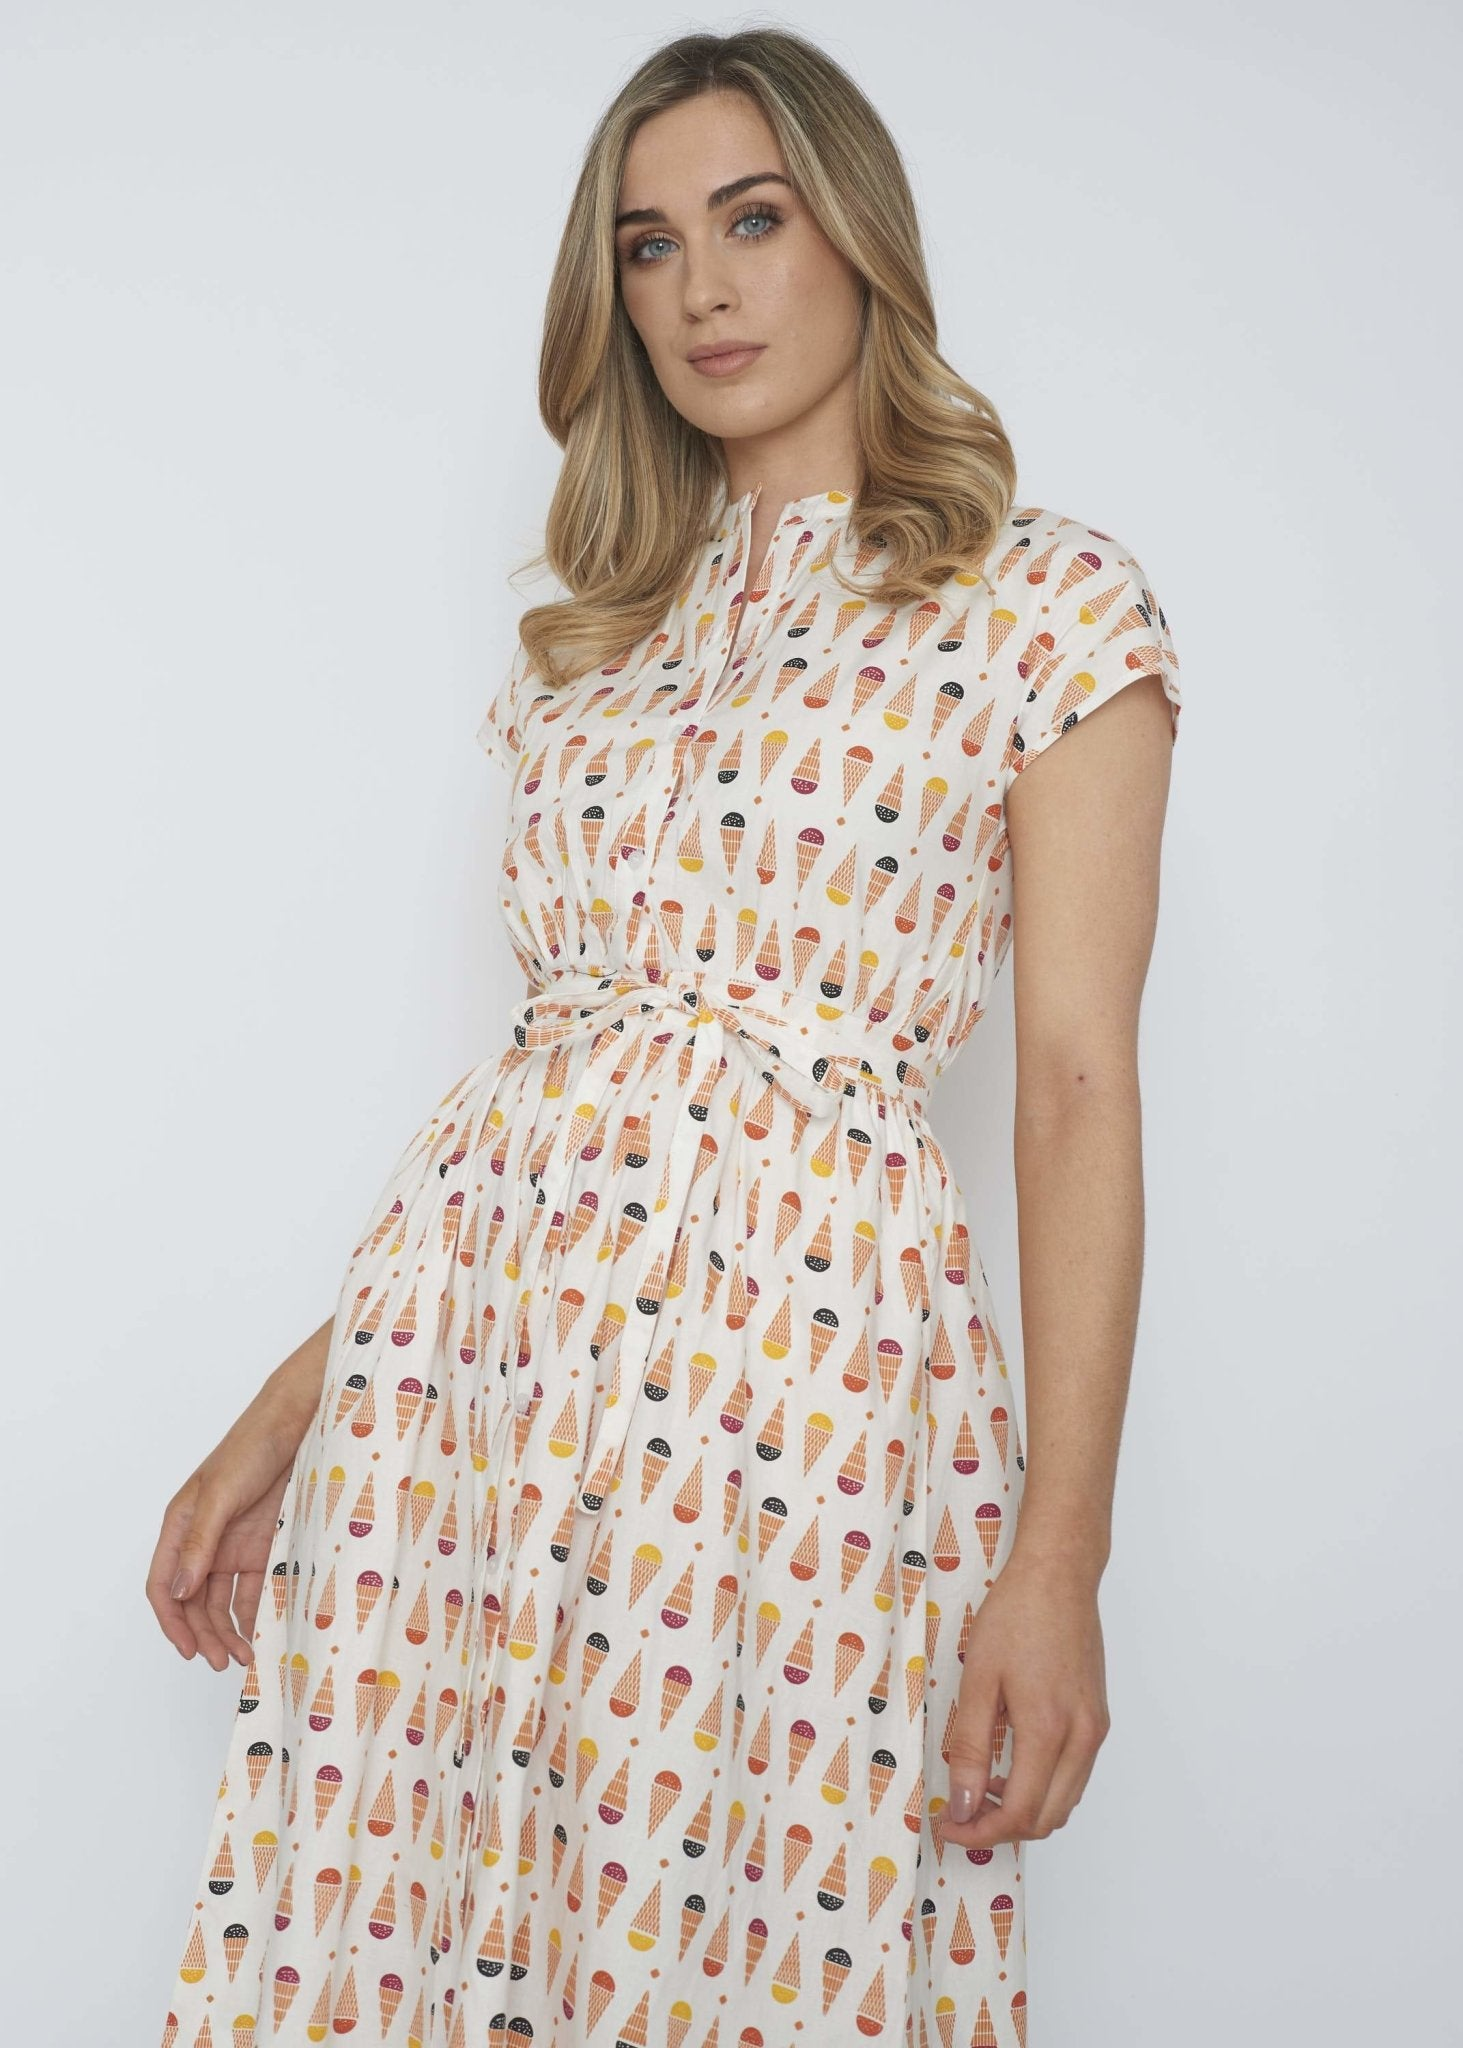 Frankie Shirt Dress In Ice Cream Print - The Walk in Wardrobe